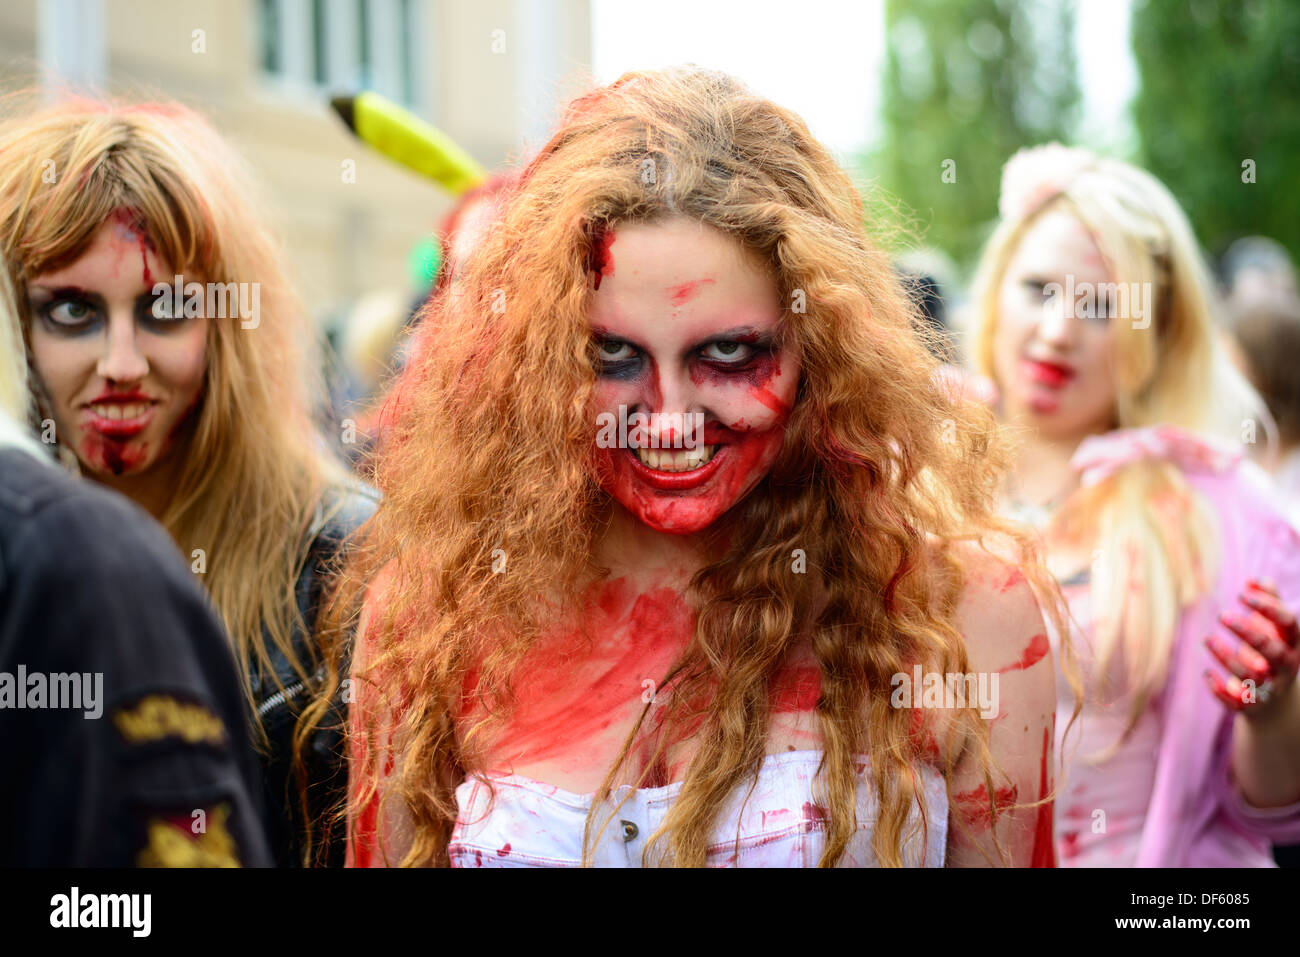 2013 Stockholm Zombie Walk Stock Photo